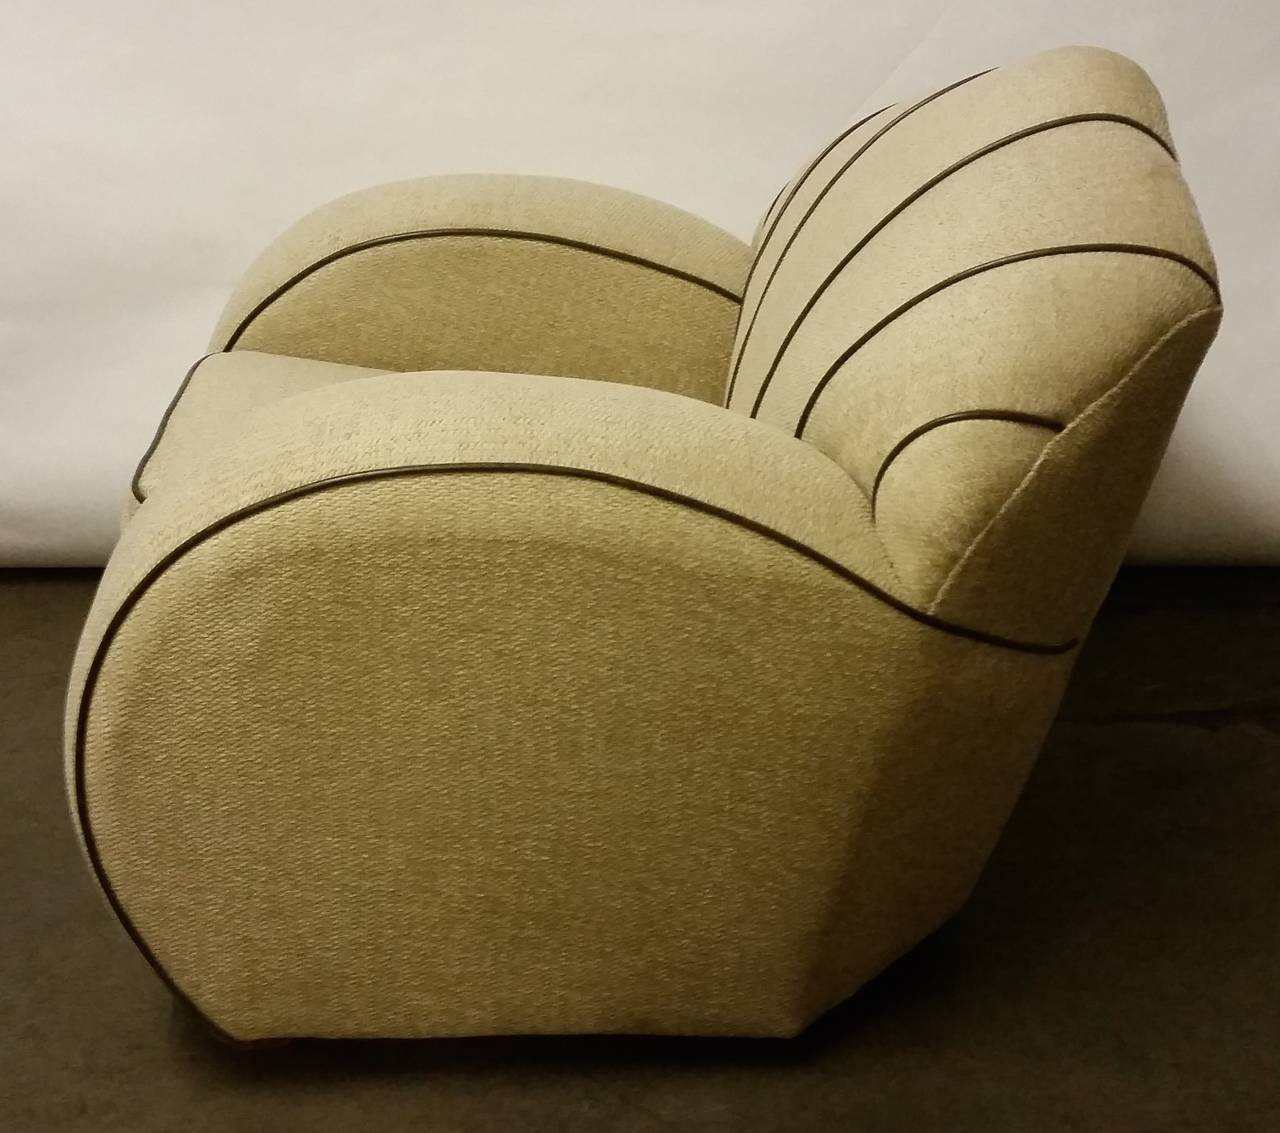 An awesome pair of Art Deco armchairs. We have had these fabulous armchairs re-upholstered in a light tweed with brown leather piping and they look marvelous. This great shape is accentuated with the contrasting piping. Dimensions: 80 cm H 96 cm